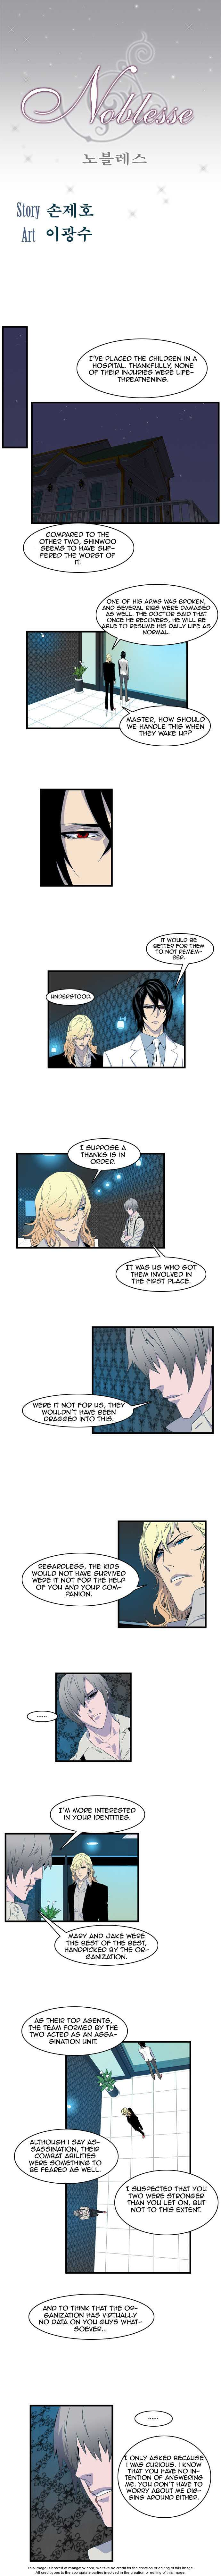 Noblesse 79 Page 1